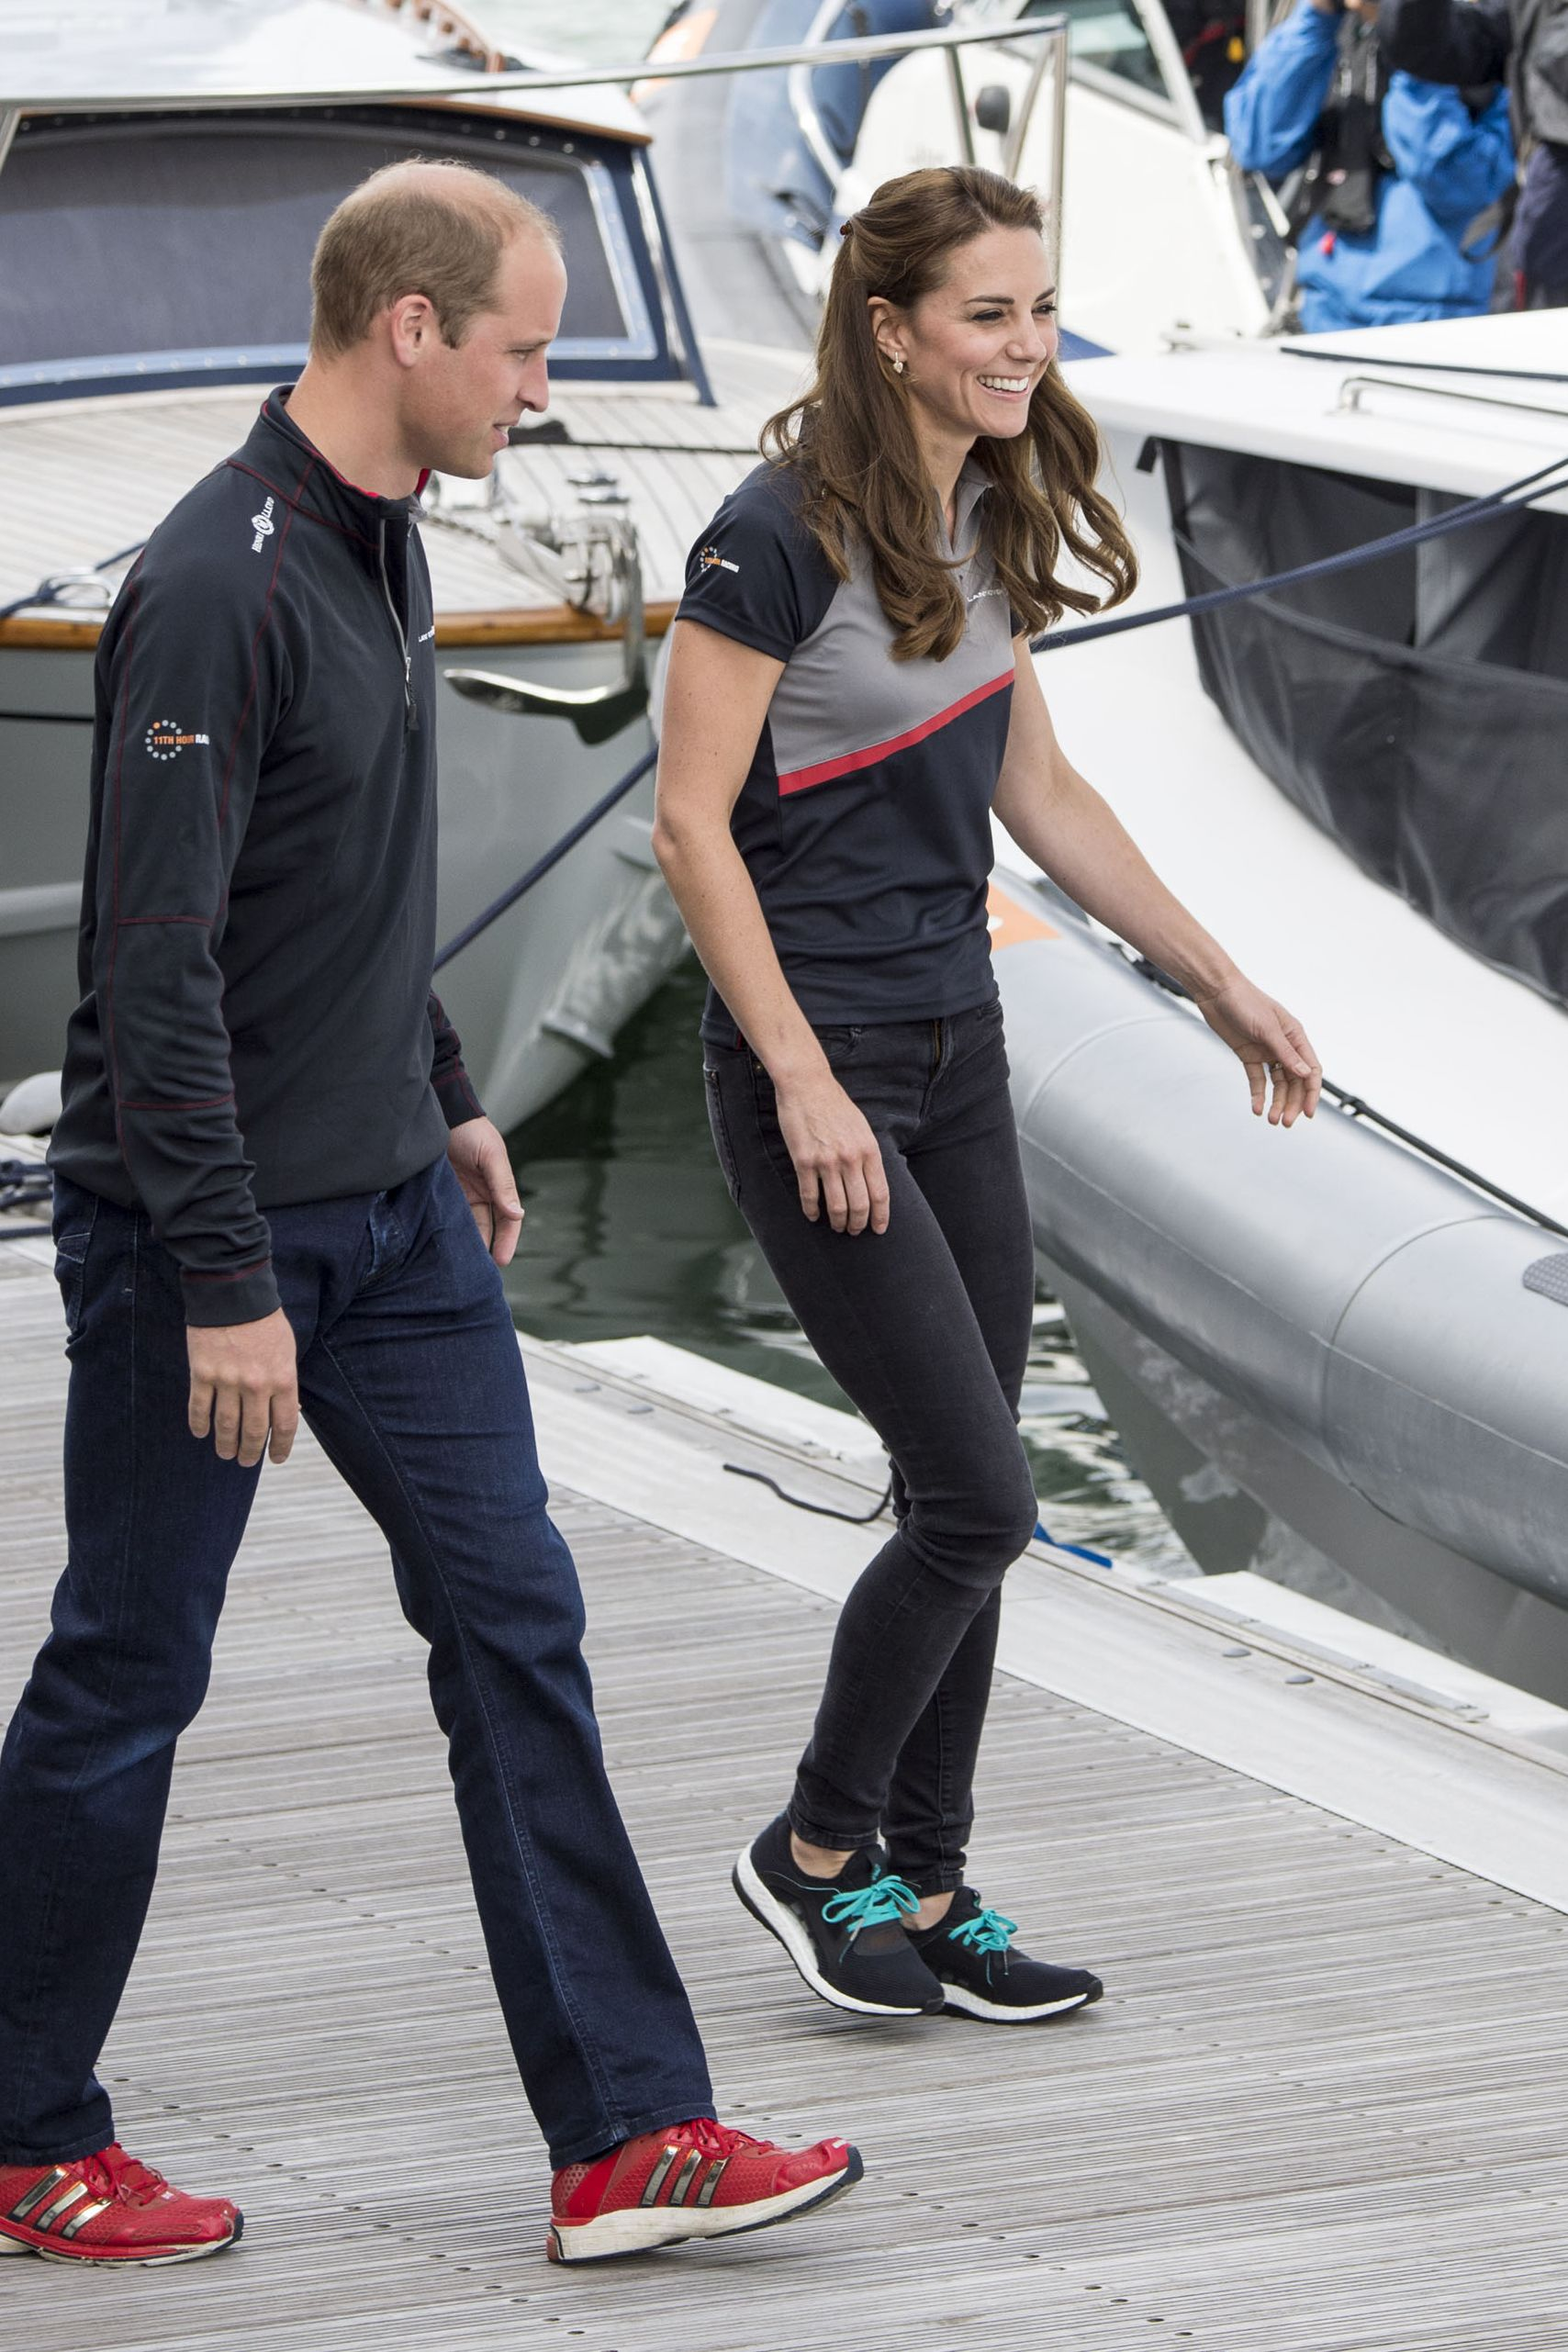 Shop Now Adidas Pureboost X Running Shoes, $120 Kate wore another pair of sneakers—Adidas this time—to the America's Cup World Series on July 24, 2016 in Portsmouth, England.